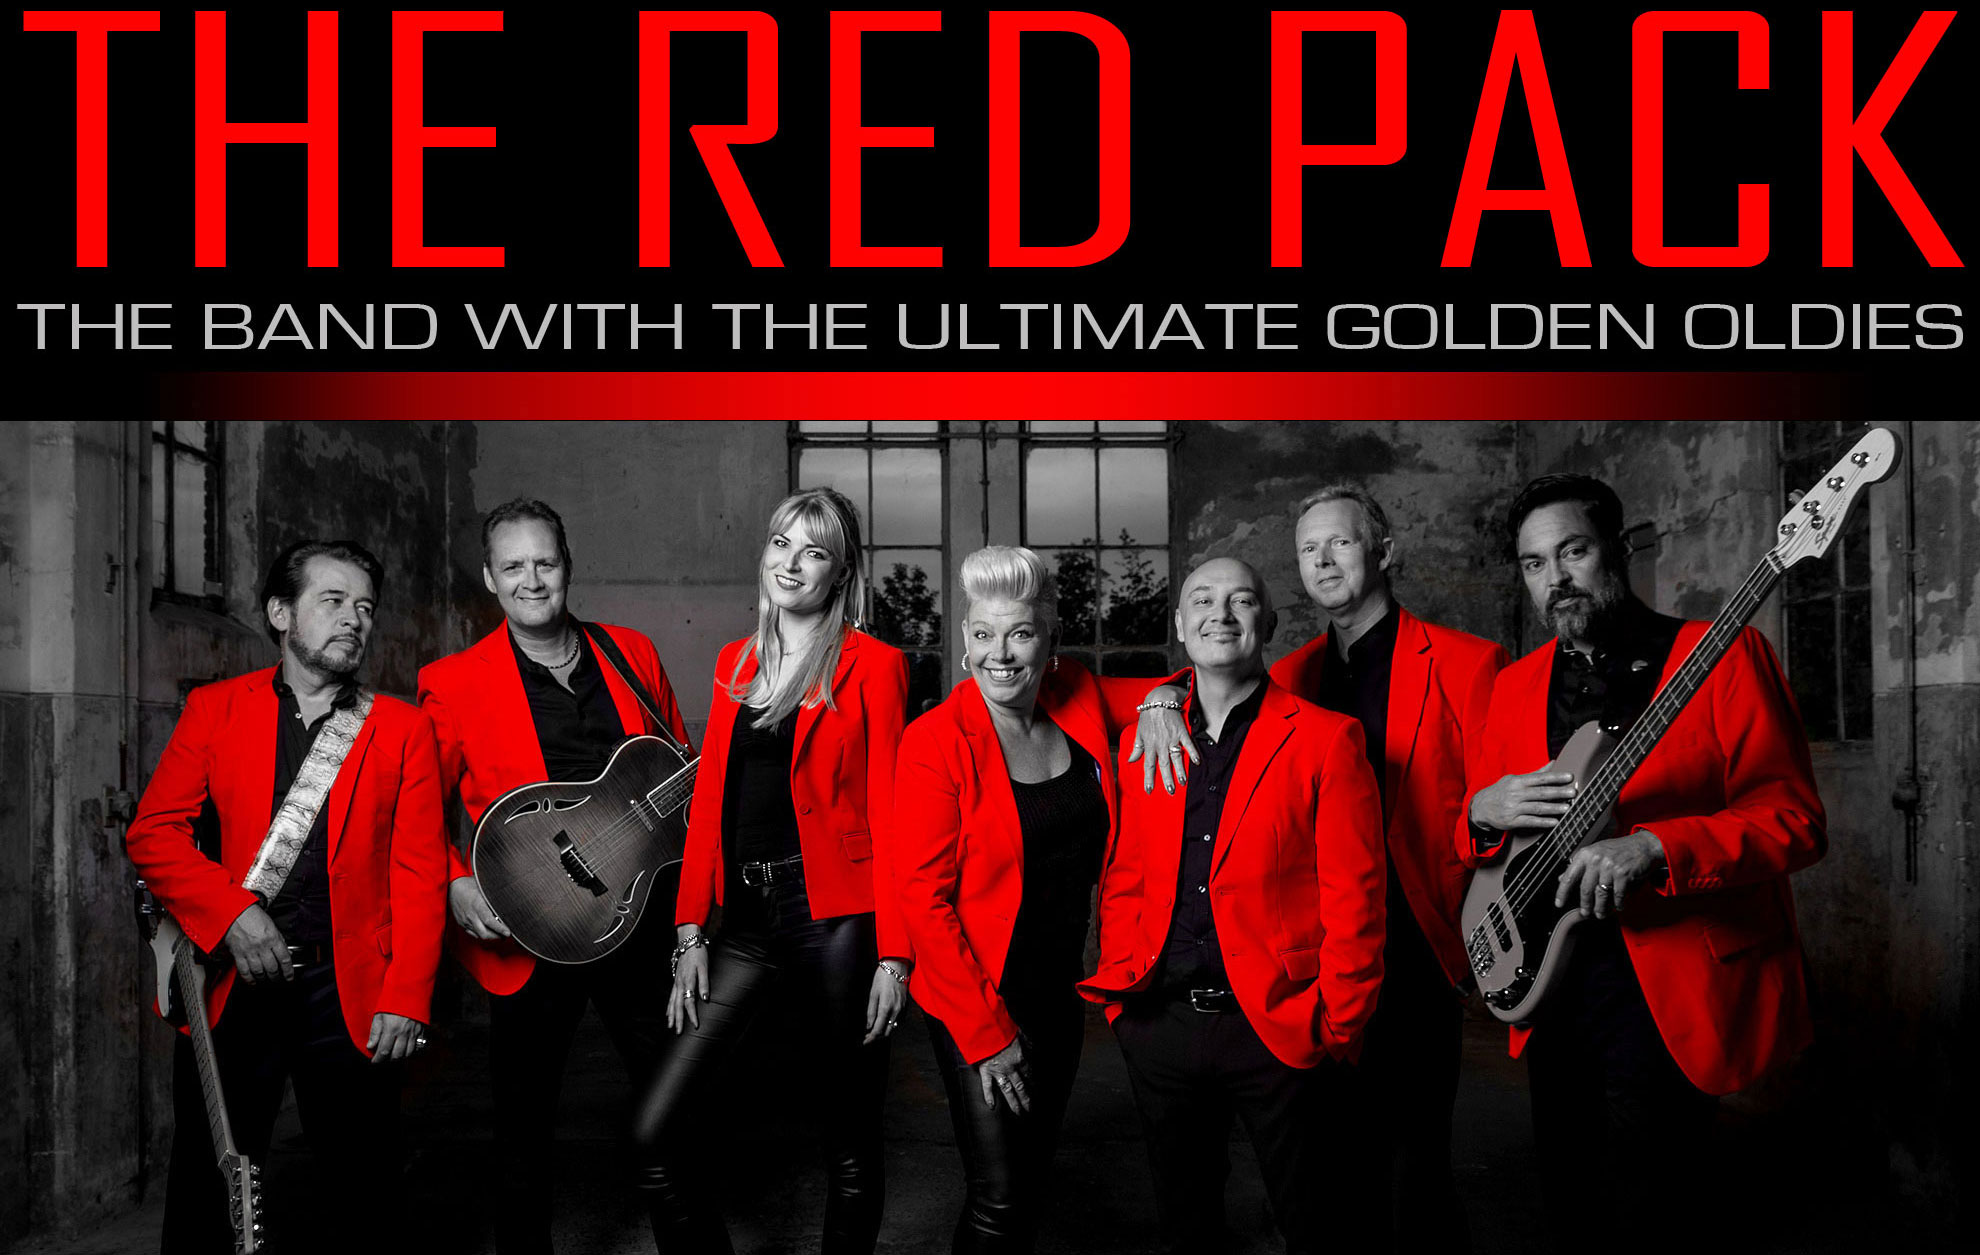 The Red Pack - The Band With The Ultimate Golden Oldies